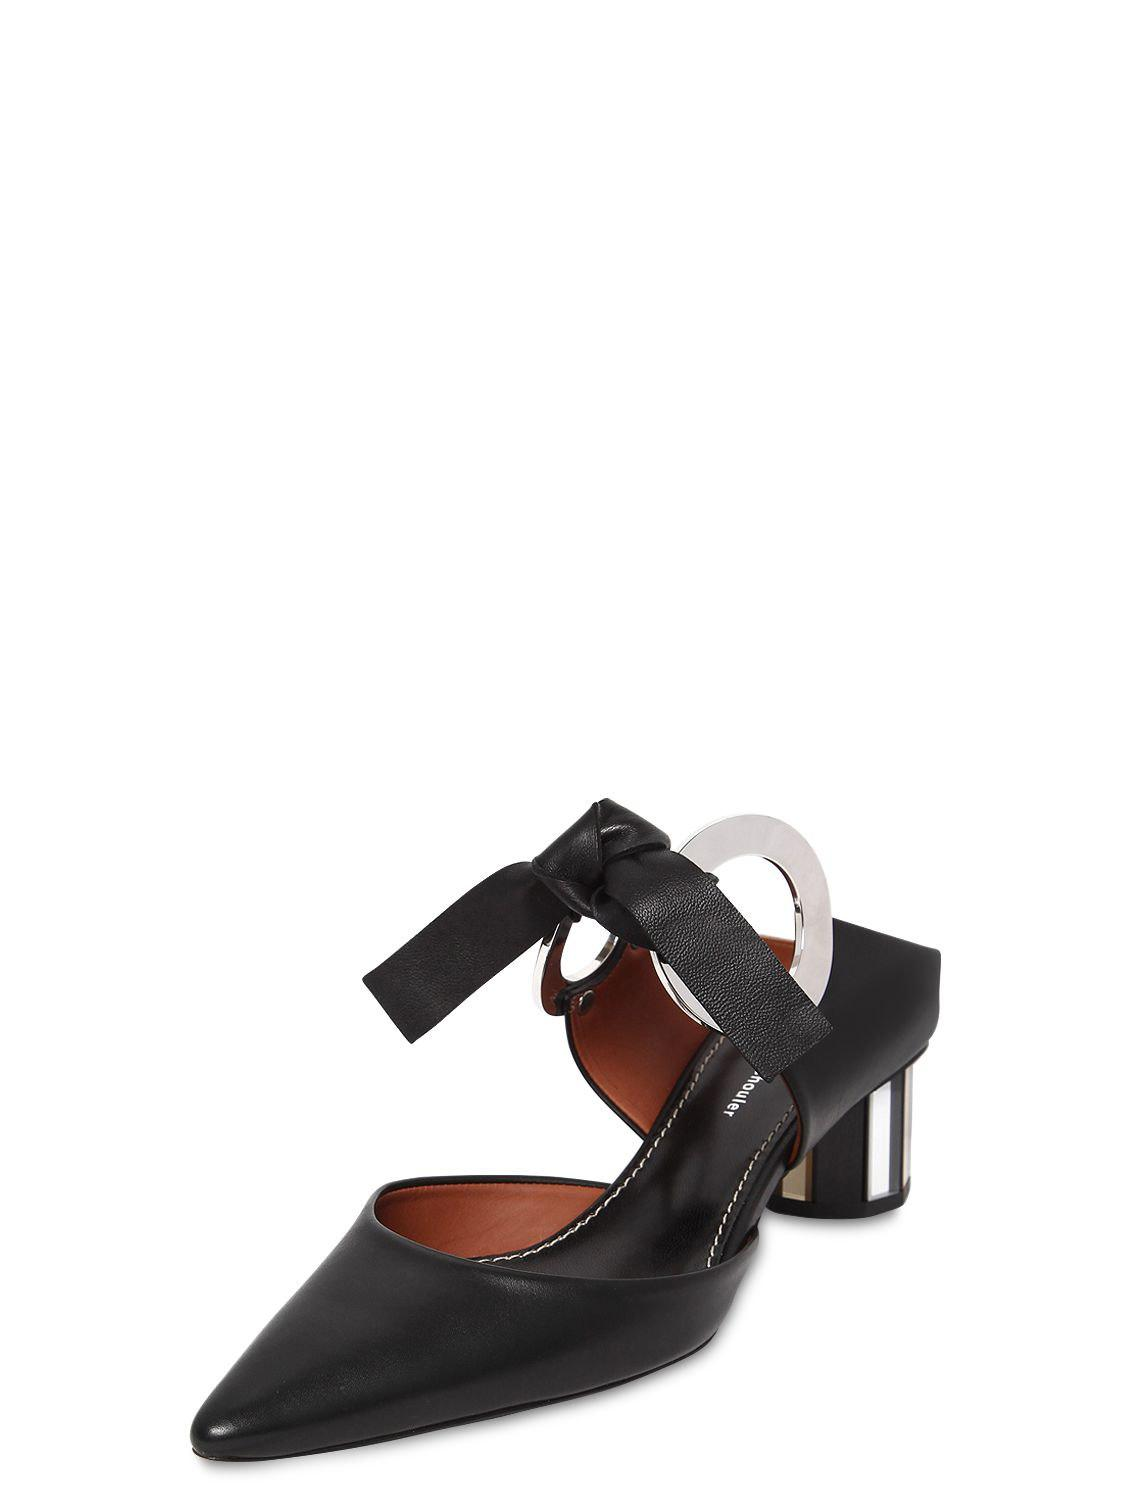 e5ebe42607a Proenza Schouler 40mm Leather Bow Mules in Black - Lyst